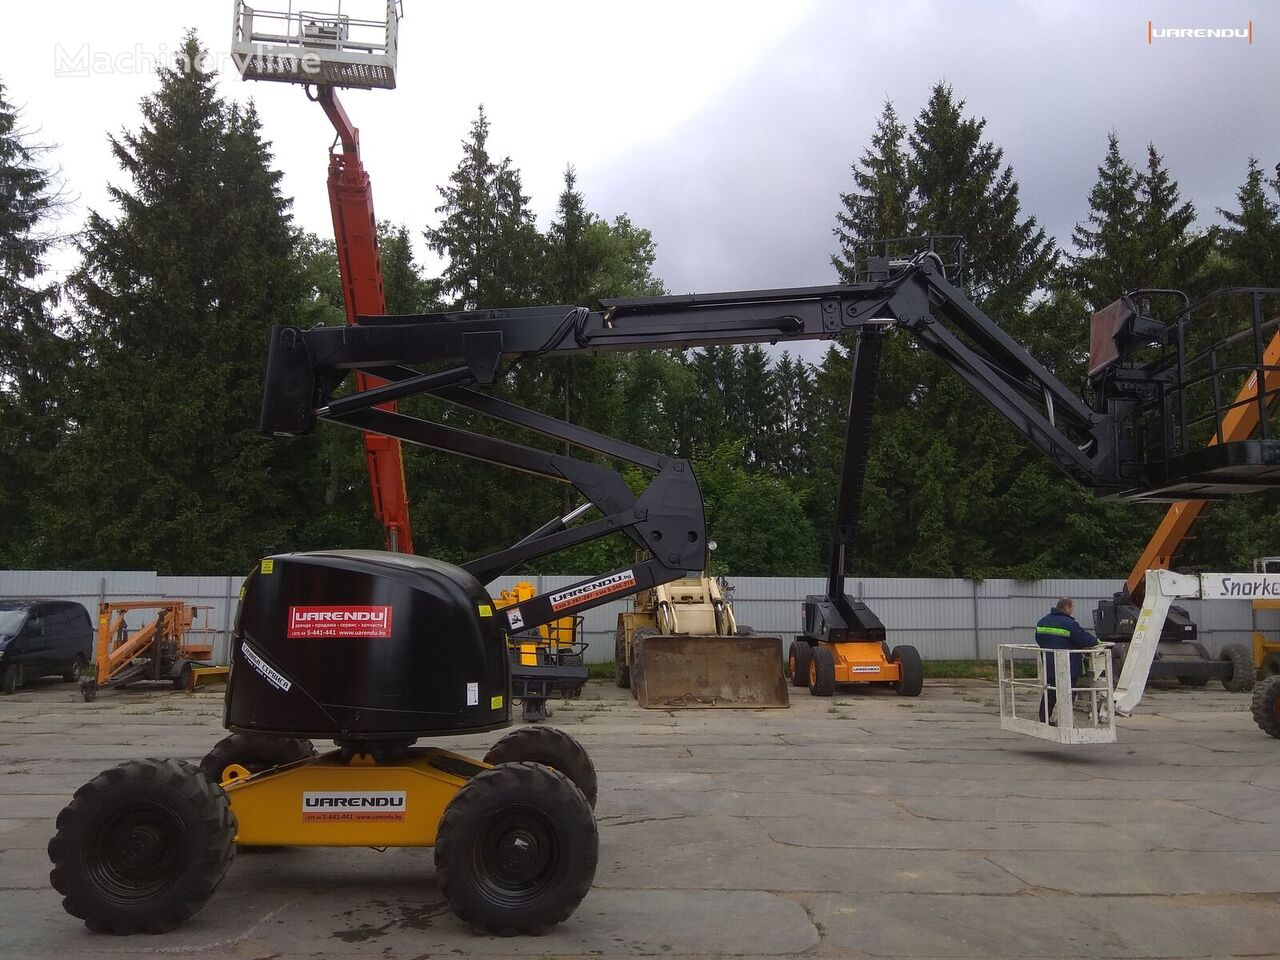 HAULOTTE HA16PX articulated boom lift